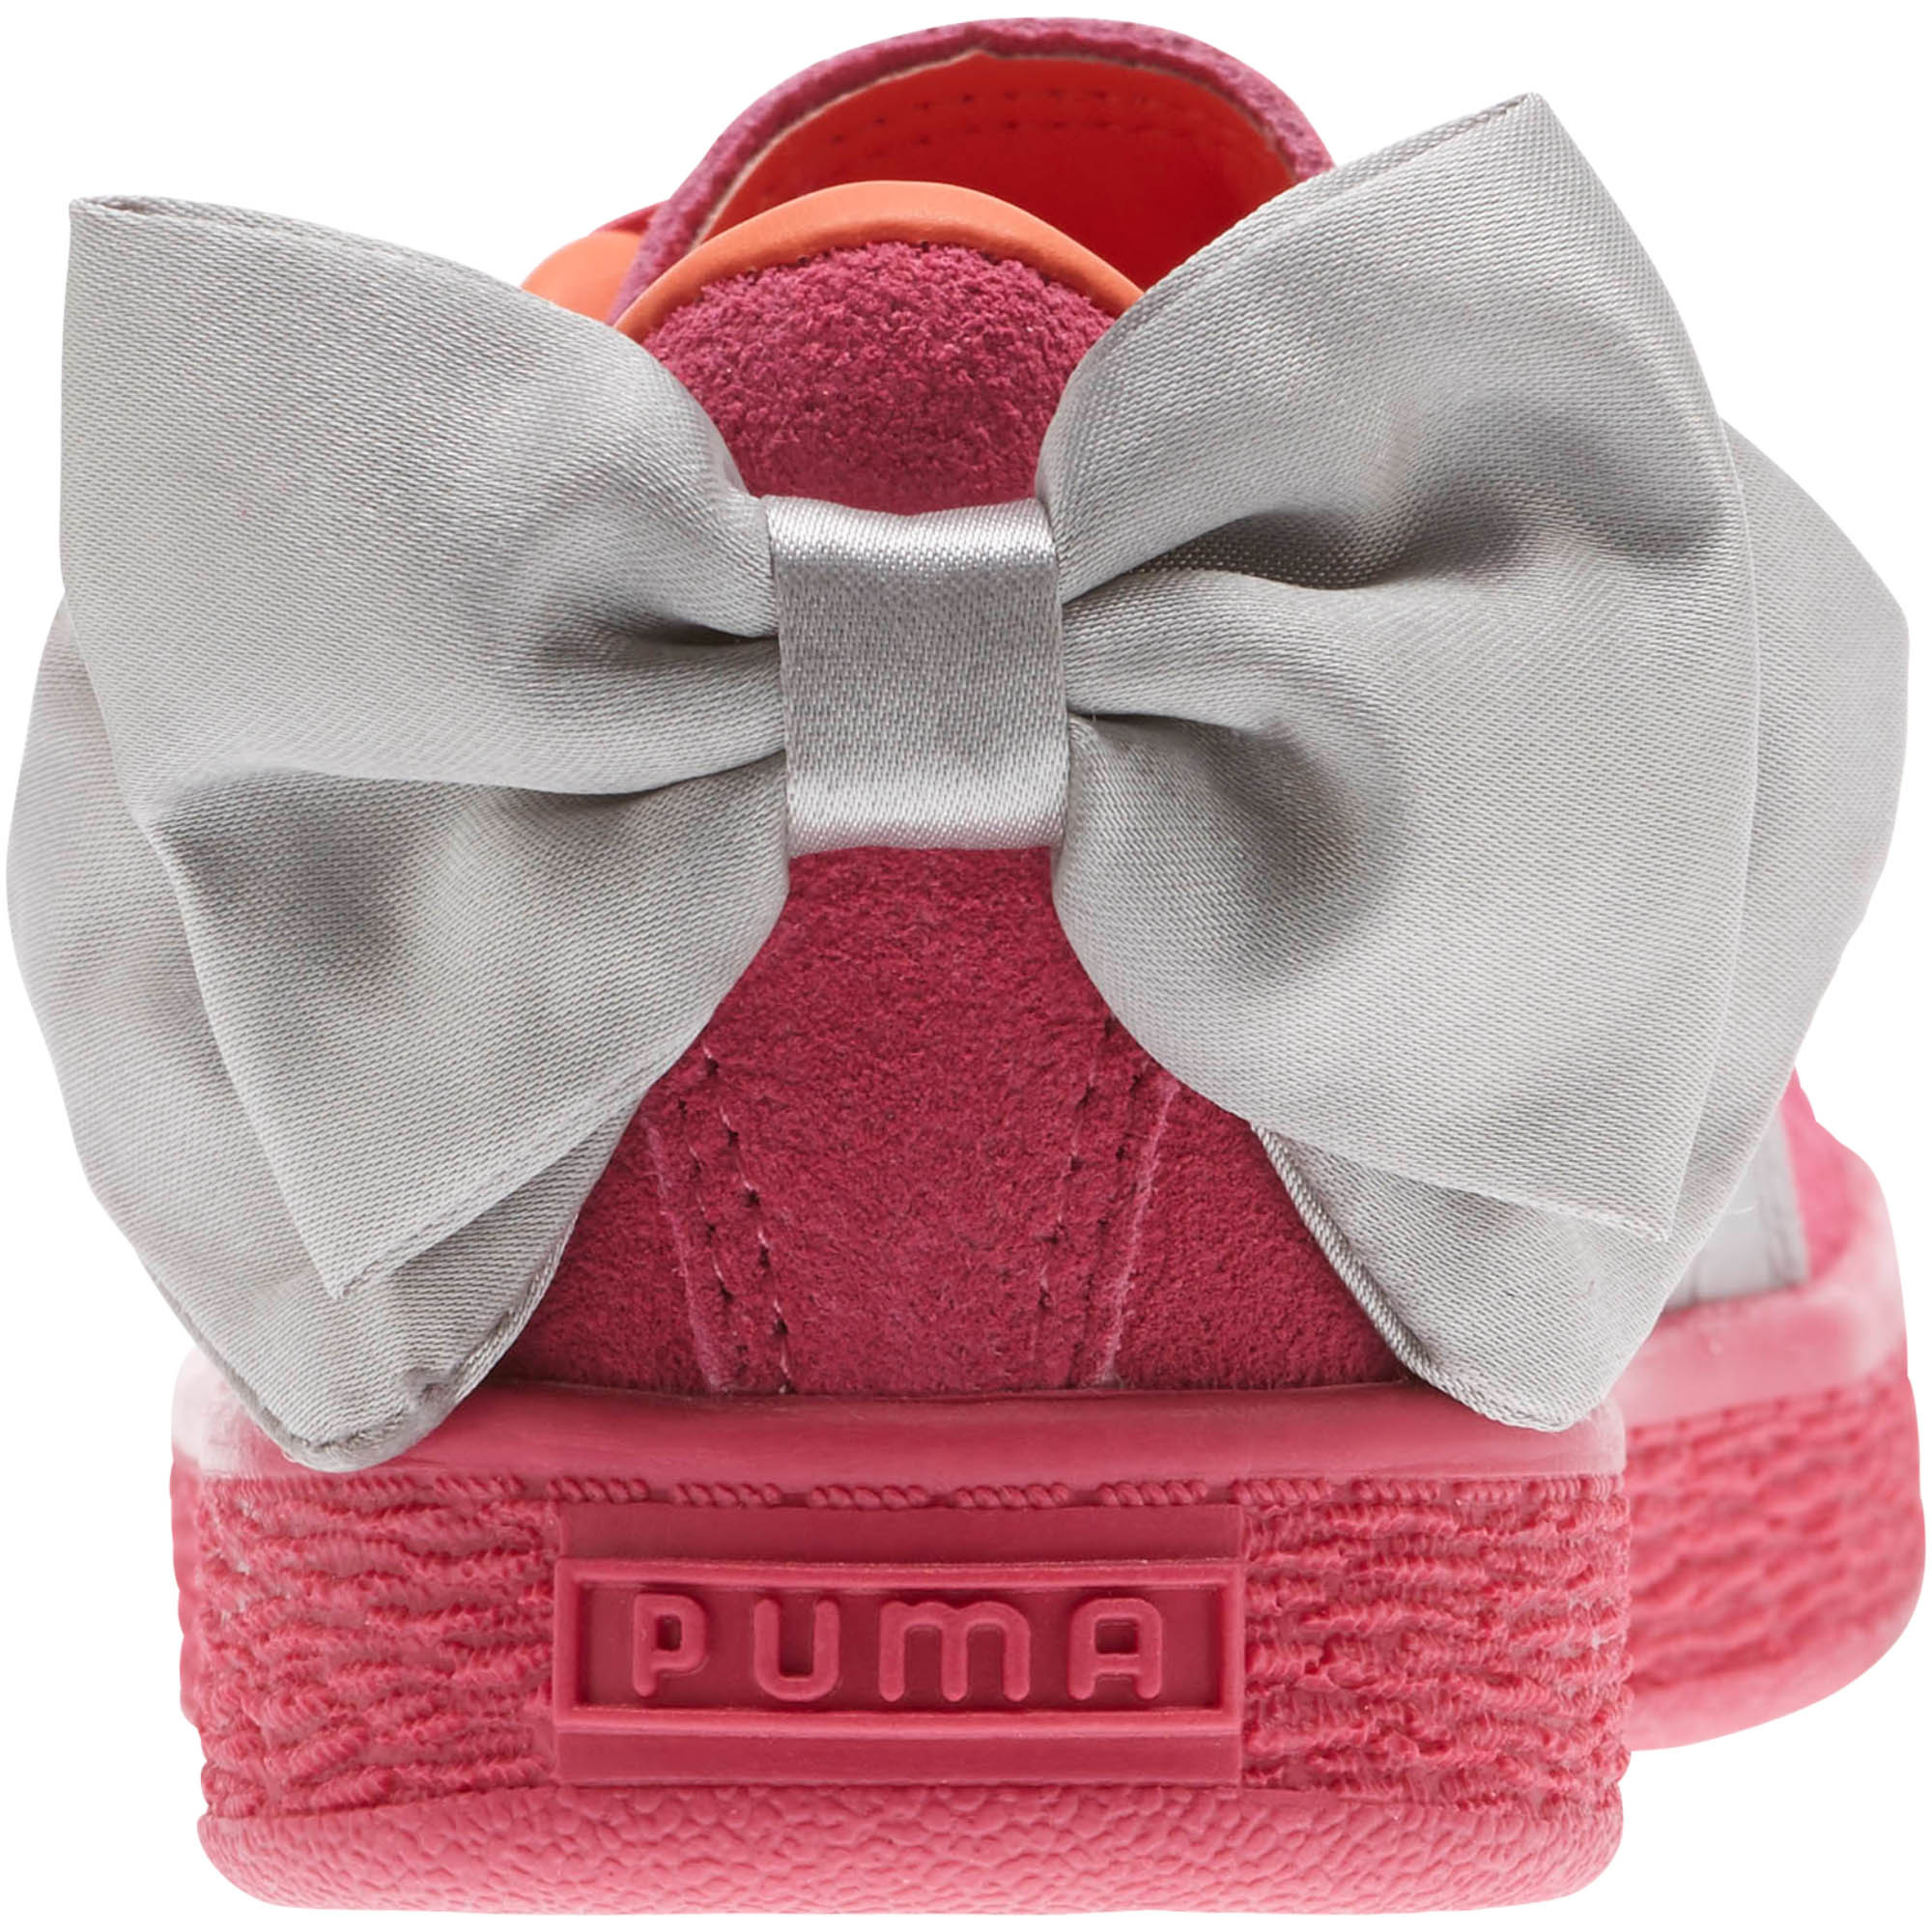 PUMA-Suede-Bow-AC-Little-Kids-039-Shoes-Girls-Shoe-Kids thumbnail 3